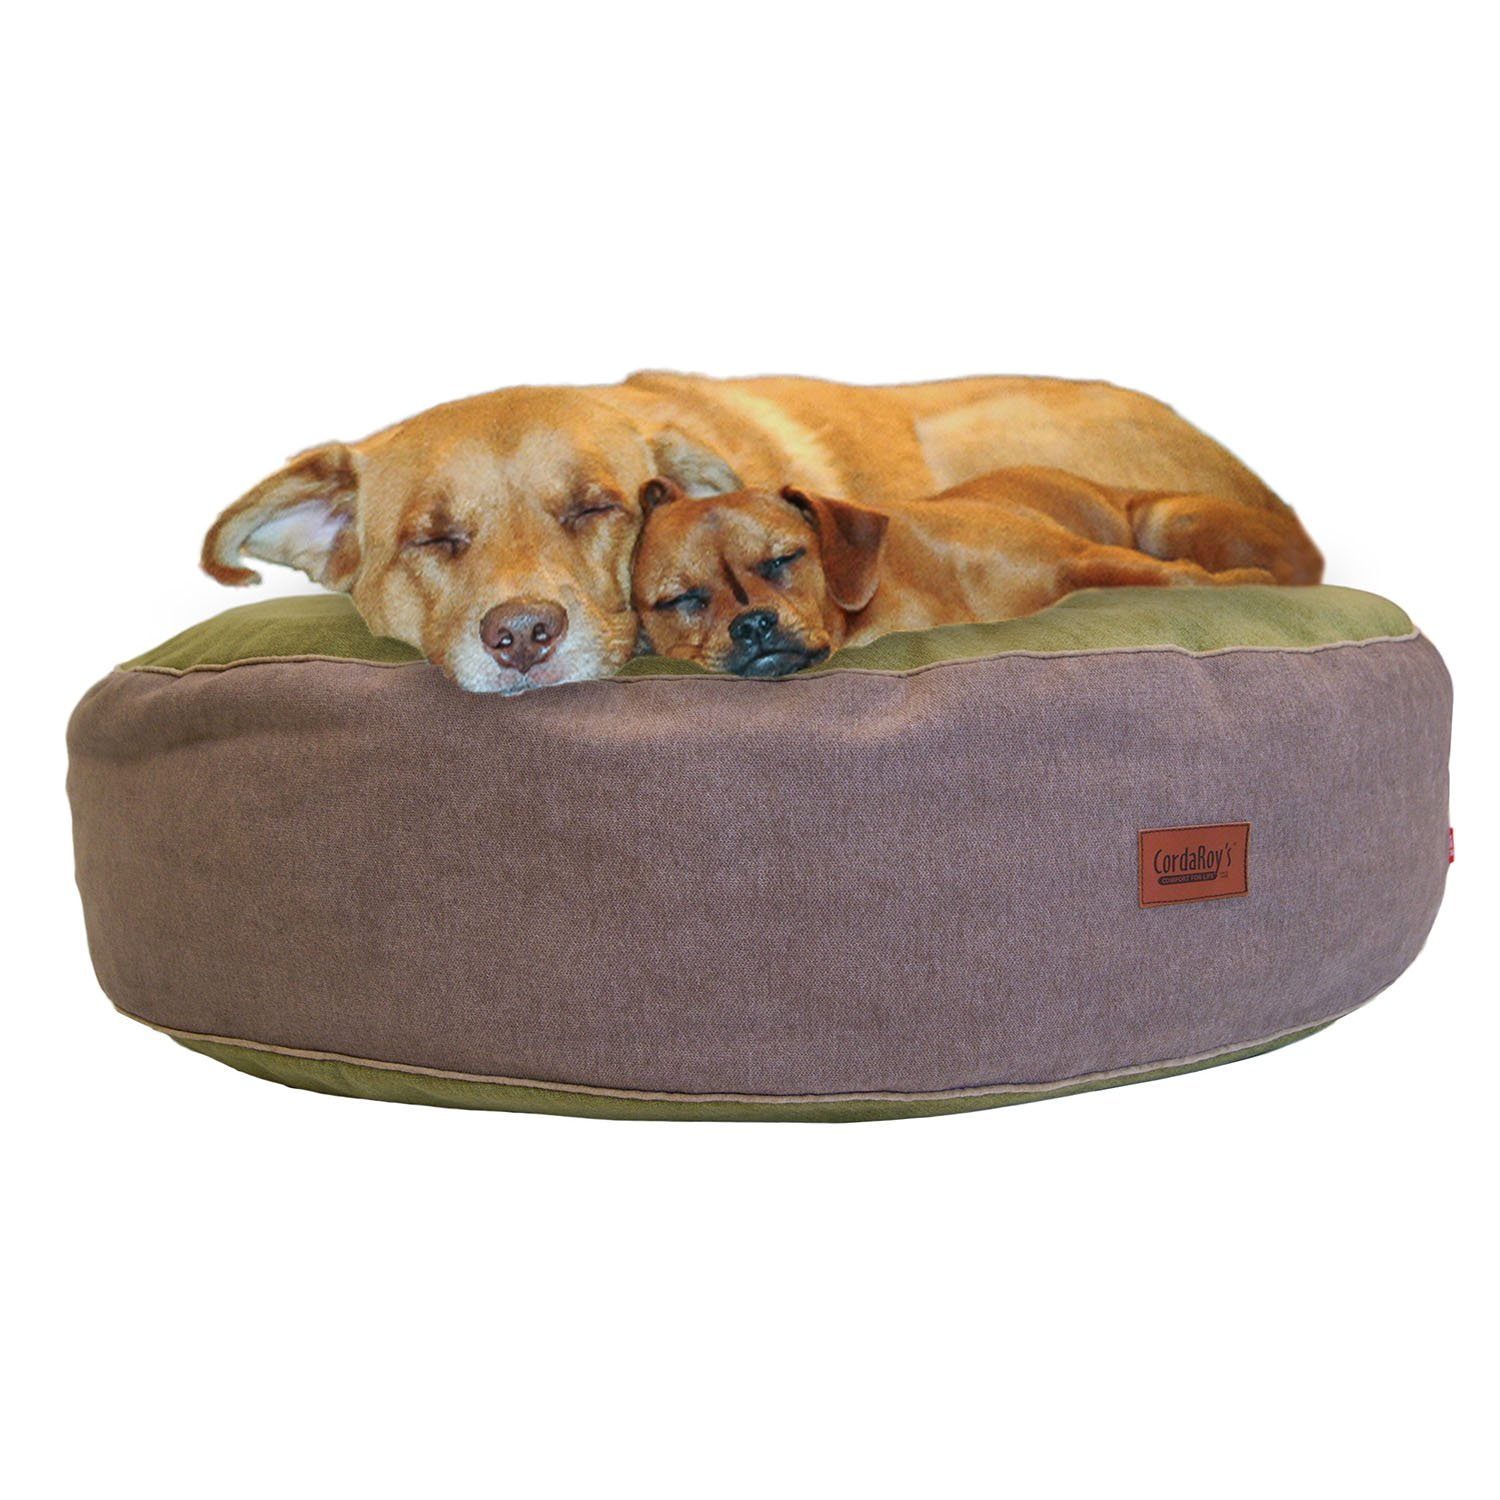 CordaRoy's PC-MN-KW40 Forever Pet Bed, Large/40'', Kiwi